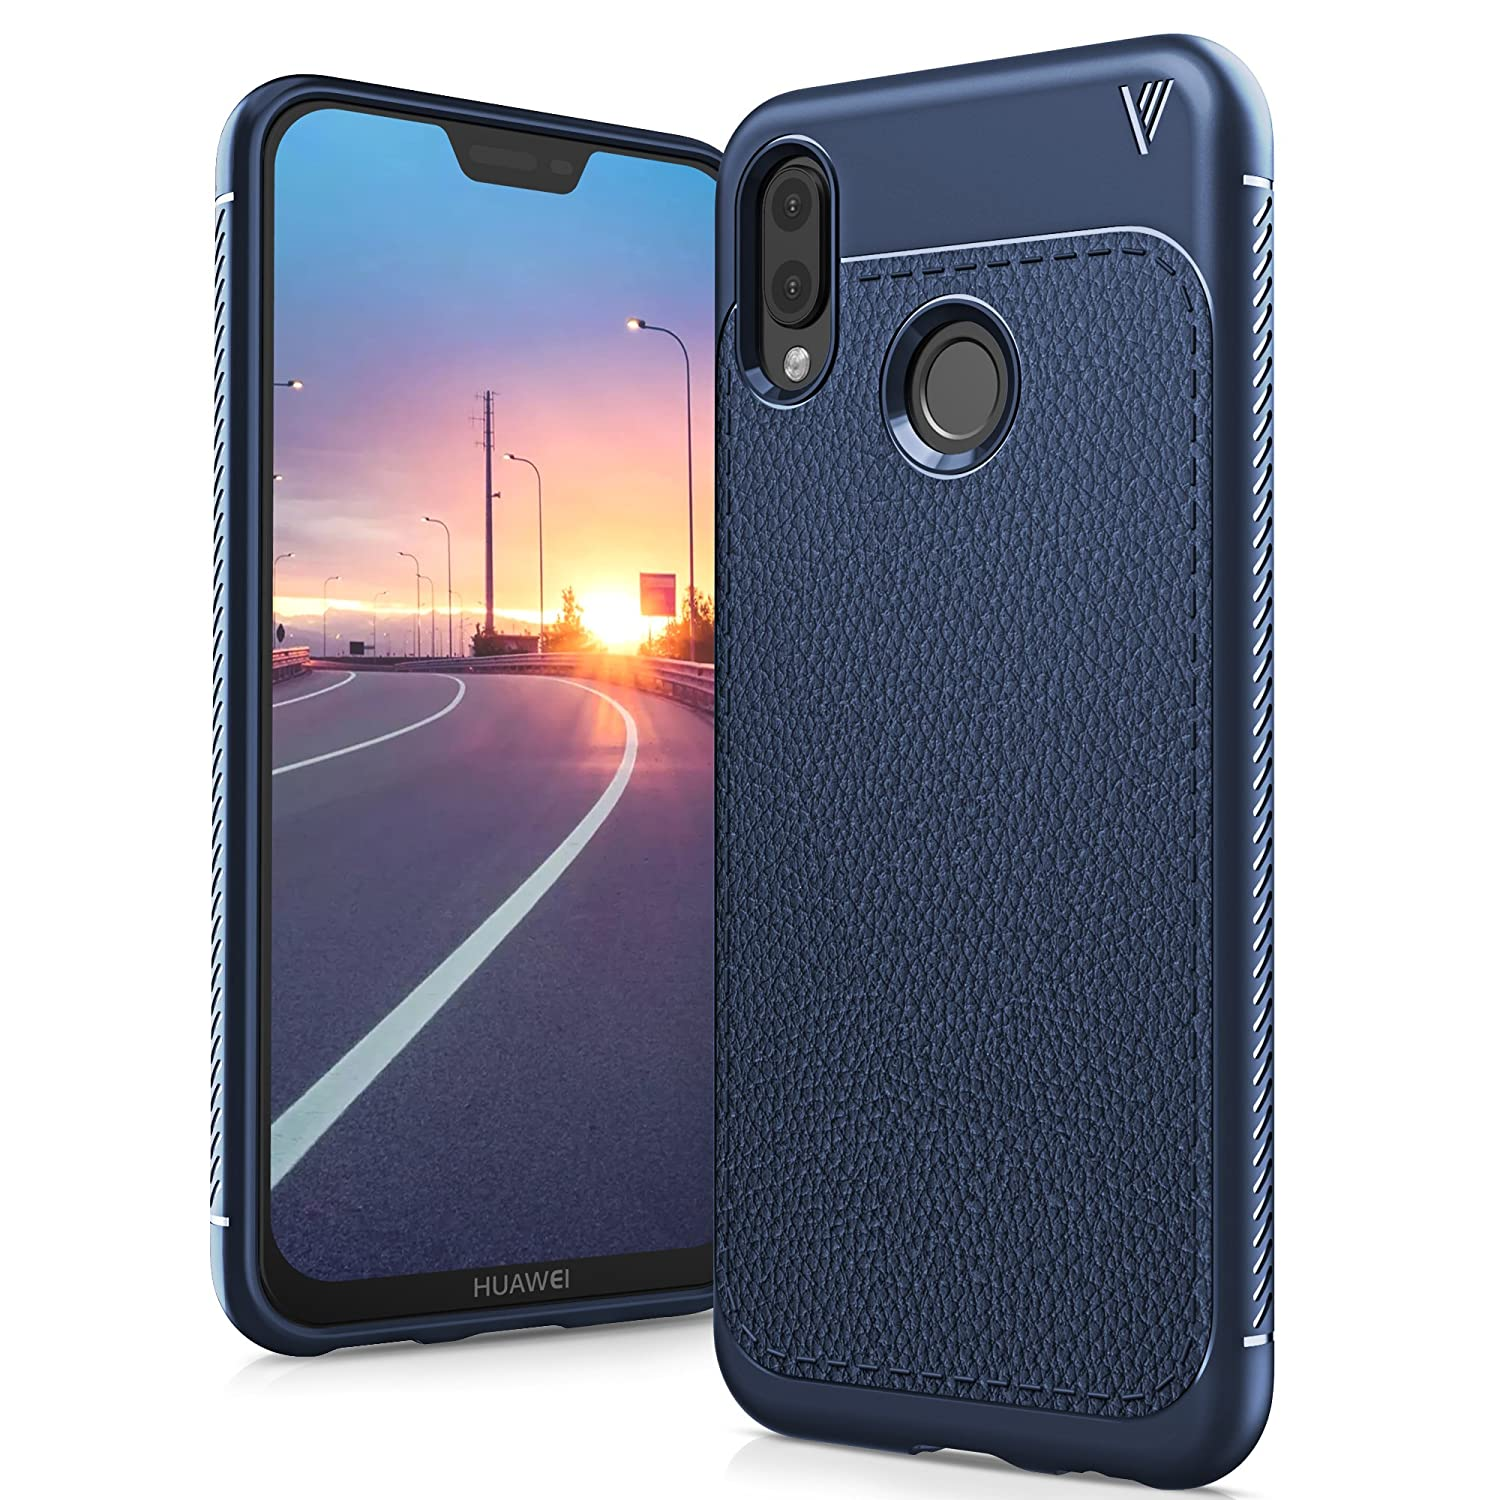 "Huawei P20 Lite Cover, Slim and Soft Protective Case in Litchi Texture Silicone TPU for Huawei P20 Lite 5.84 ""Smartphone, Litchi Indigo"